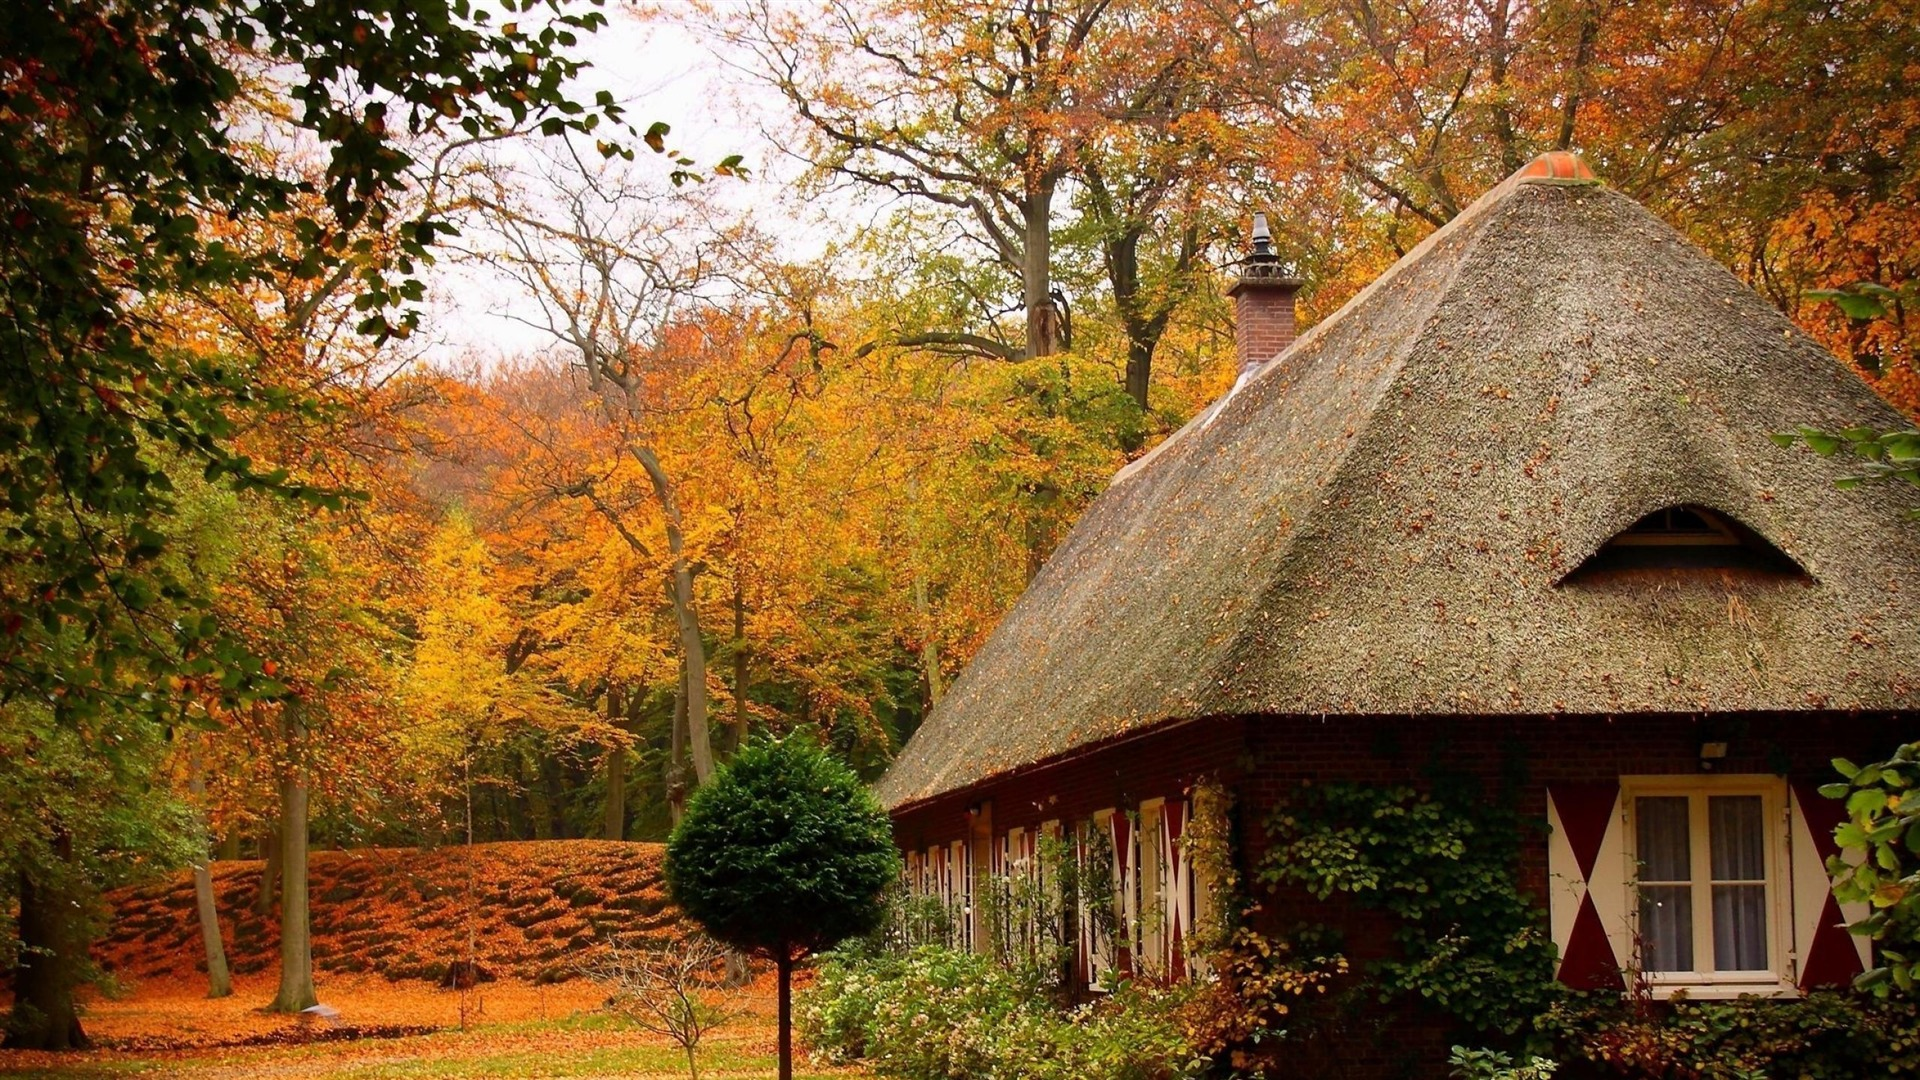 Cosy Home Autumn House Nature Wallpapers Preview